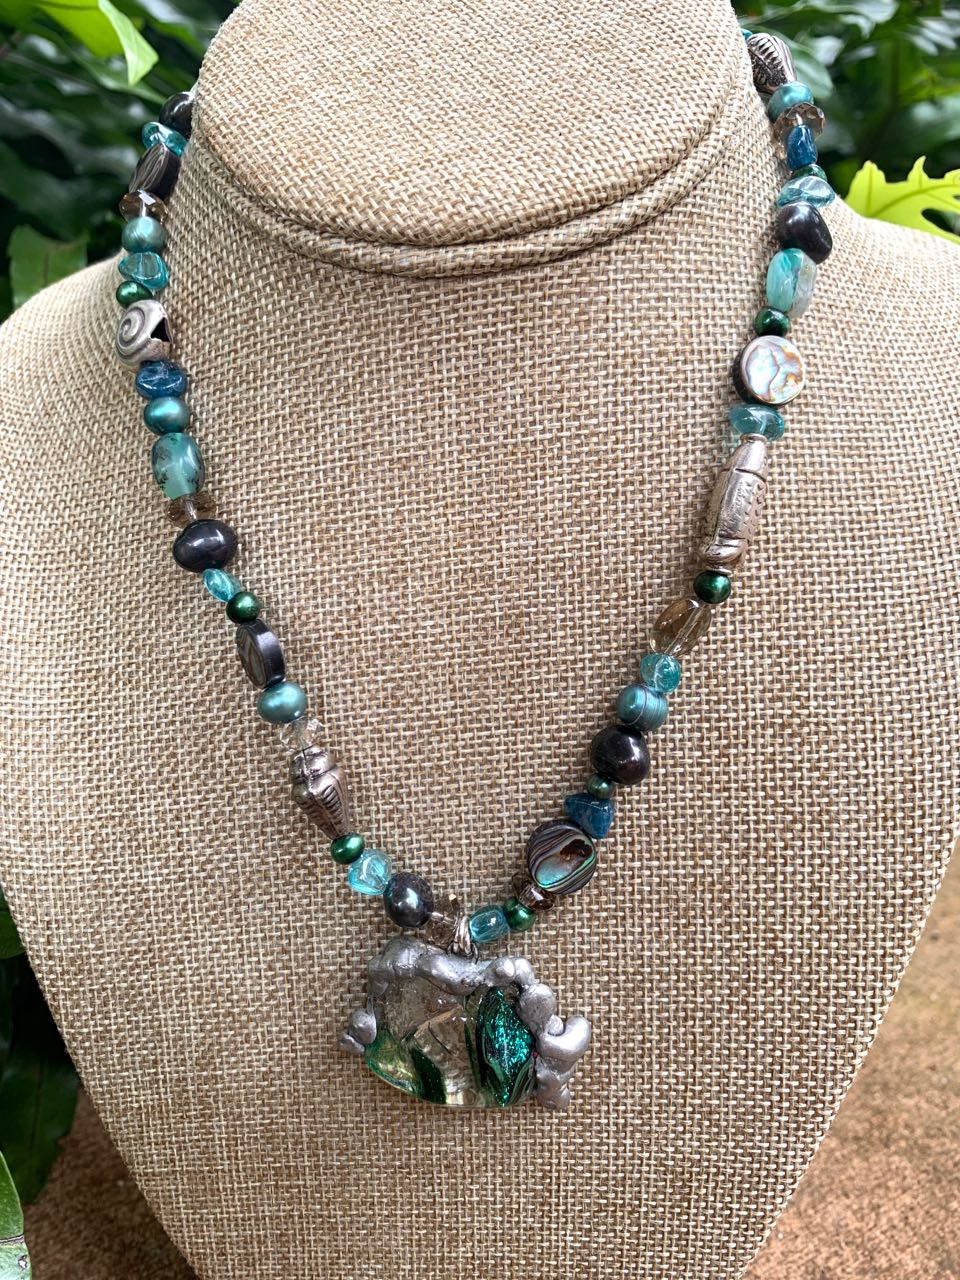 Liesel Lund: Abalone, Smoky Quartz, Pearl, Apatite, Dichroic Glass & Sterling Silver Necklace